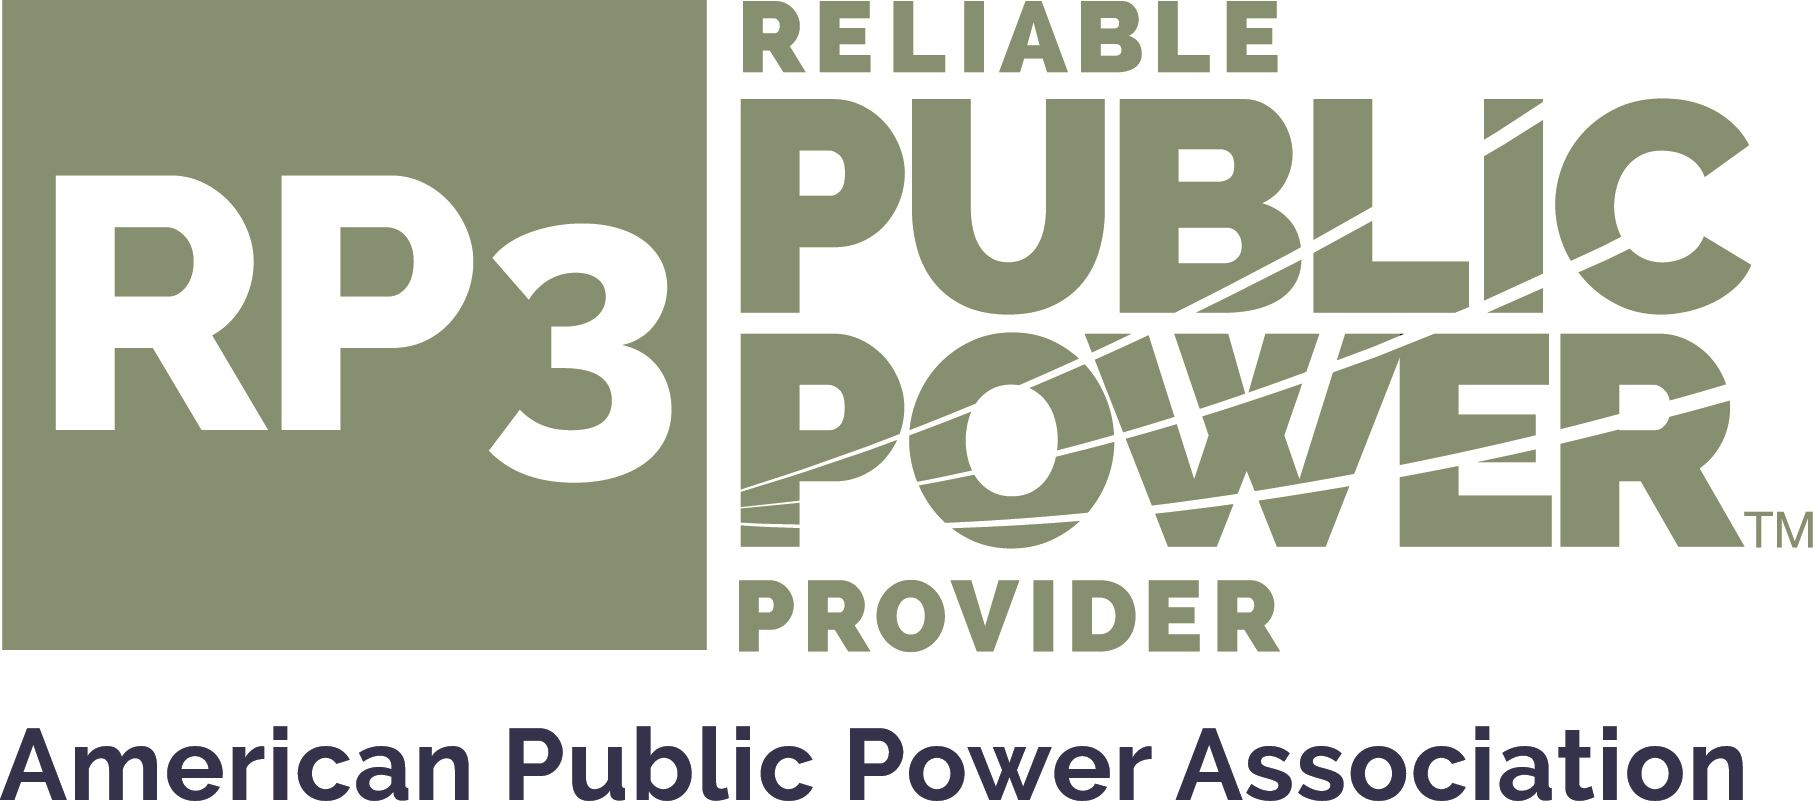 RP3 (Reliable Public Power) logo - Full Color Logo